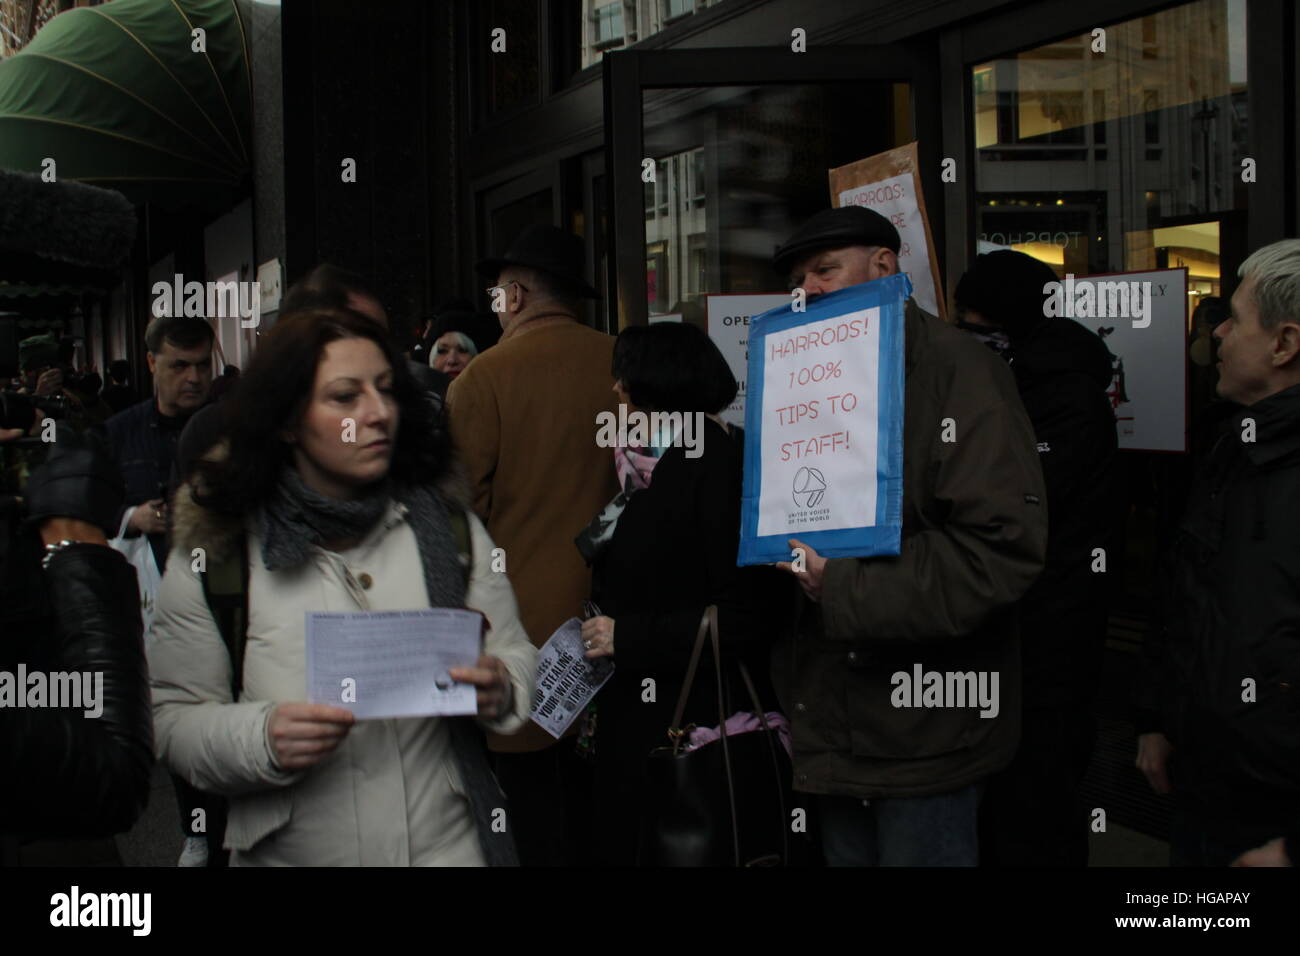 London, UK. 7th January 2017. Protesters demonstrate outside Harrods department store. The protest was organised Stock Photo